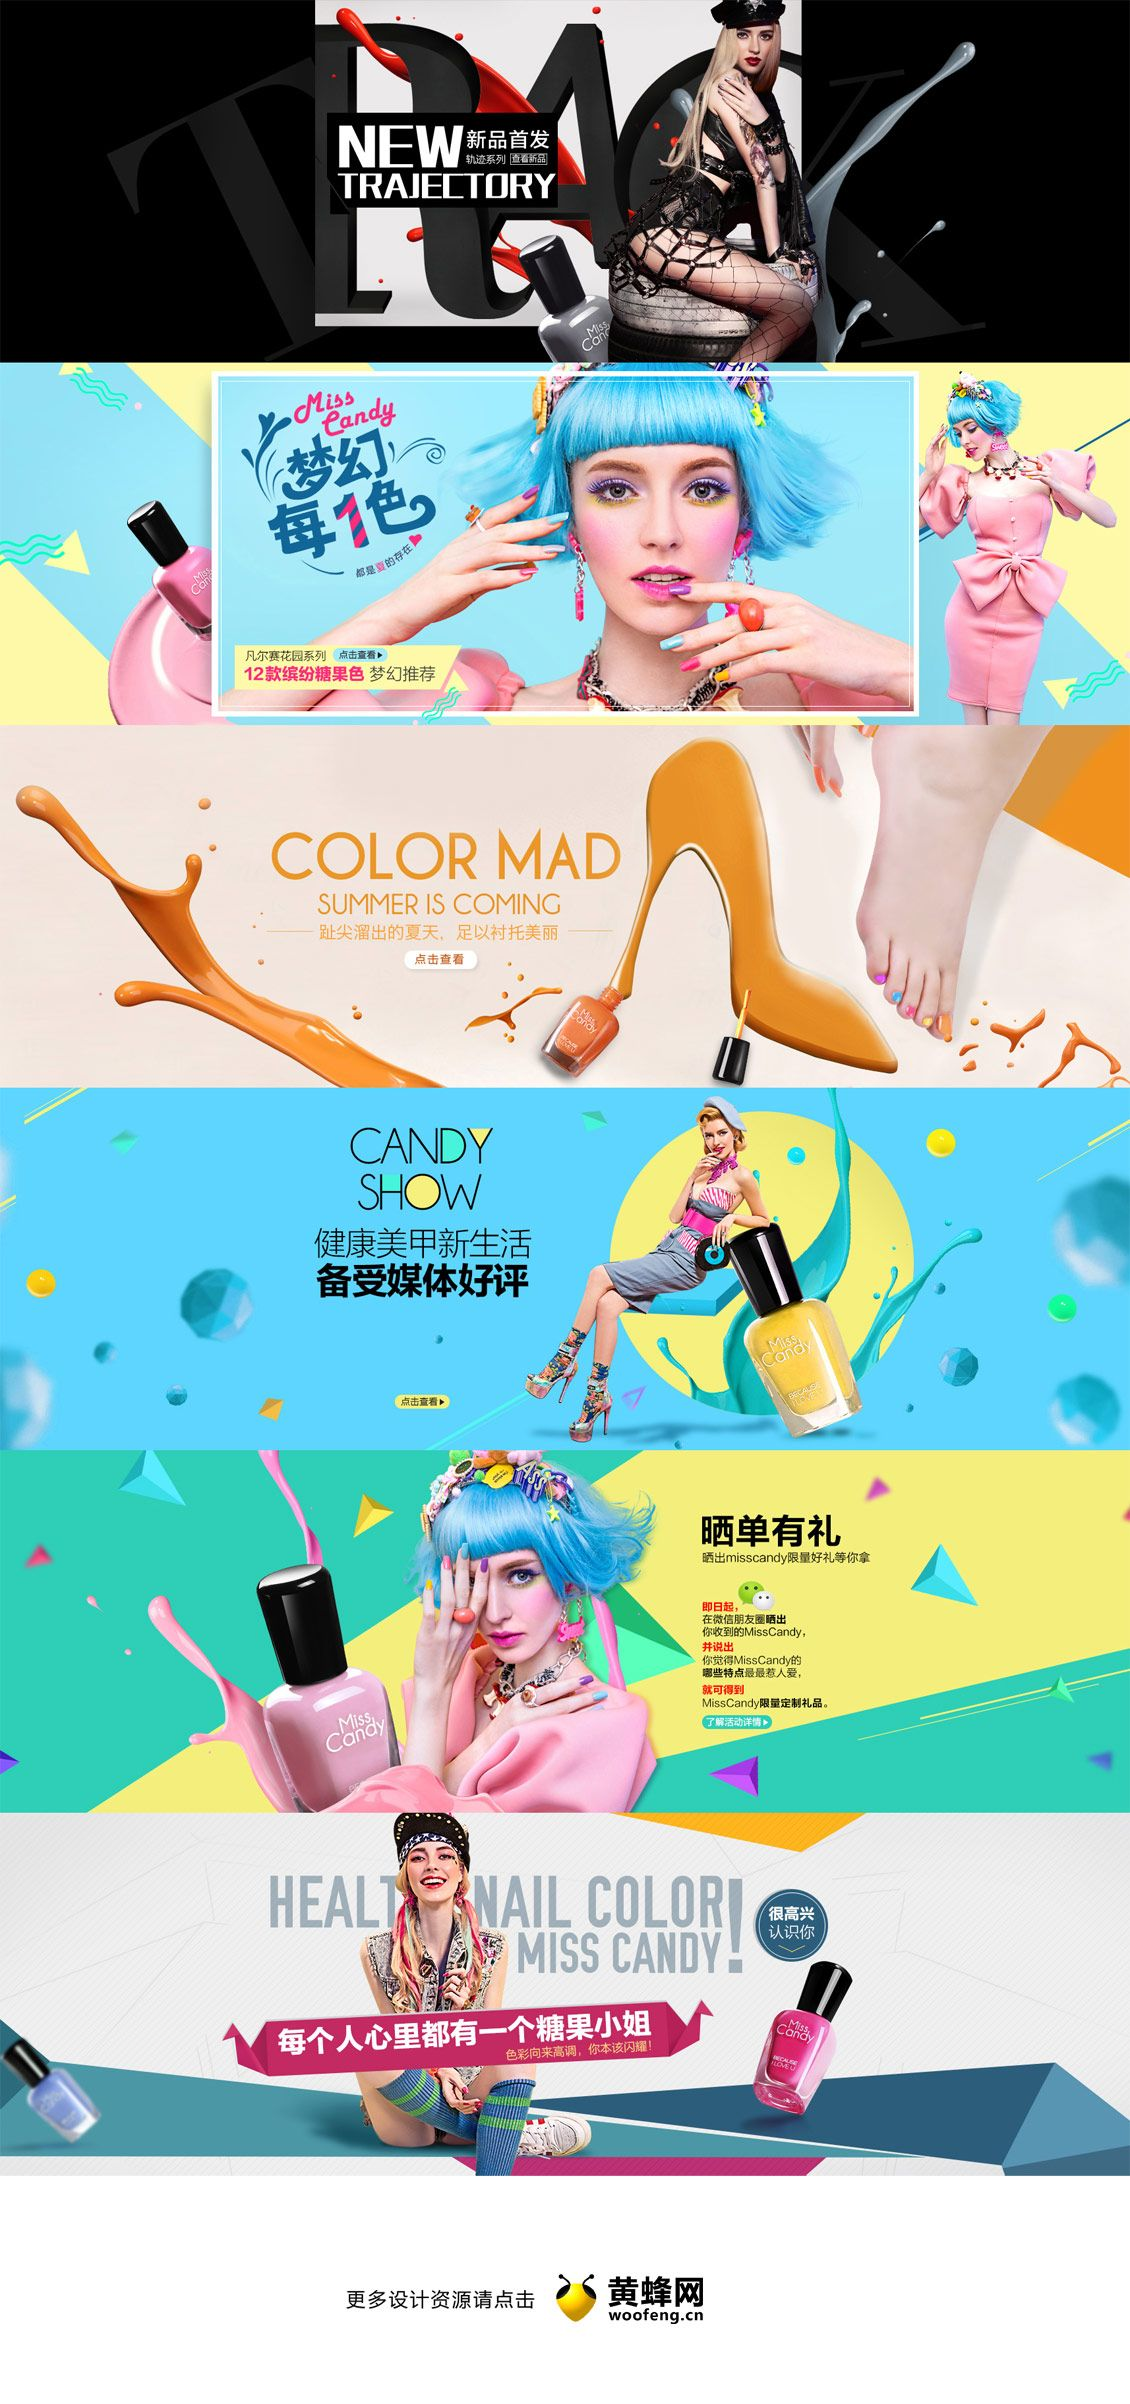 Miss Candy化妆品banner设计,来源自黄蜂网http://woofeng.cn/                                                                                                                                                     More